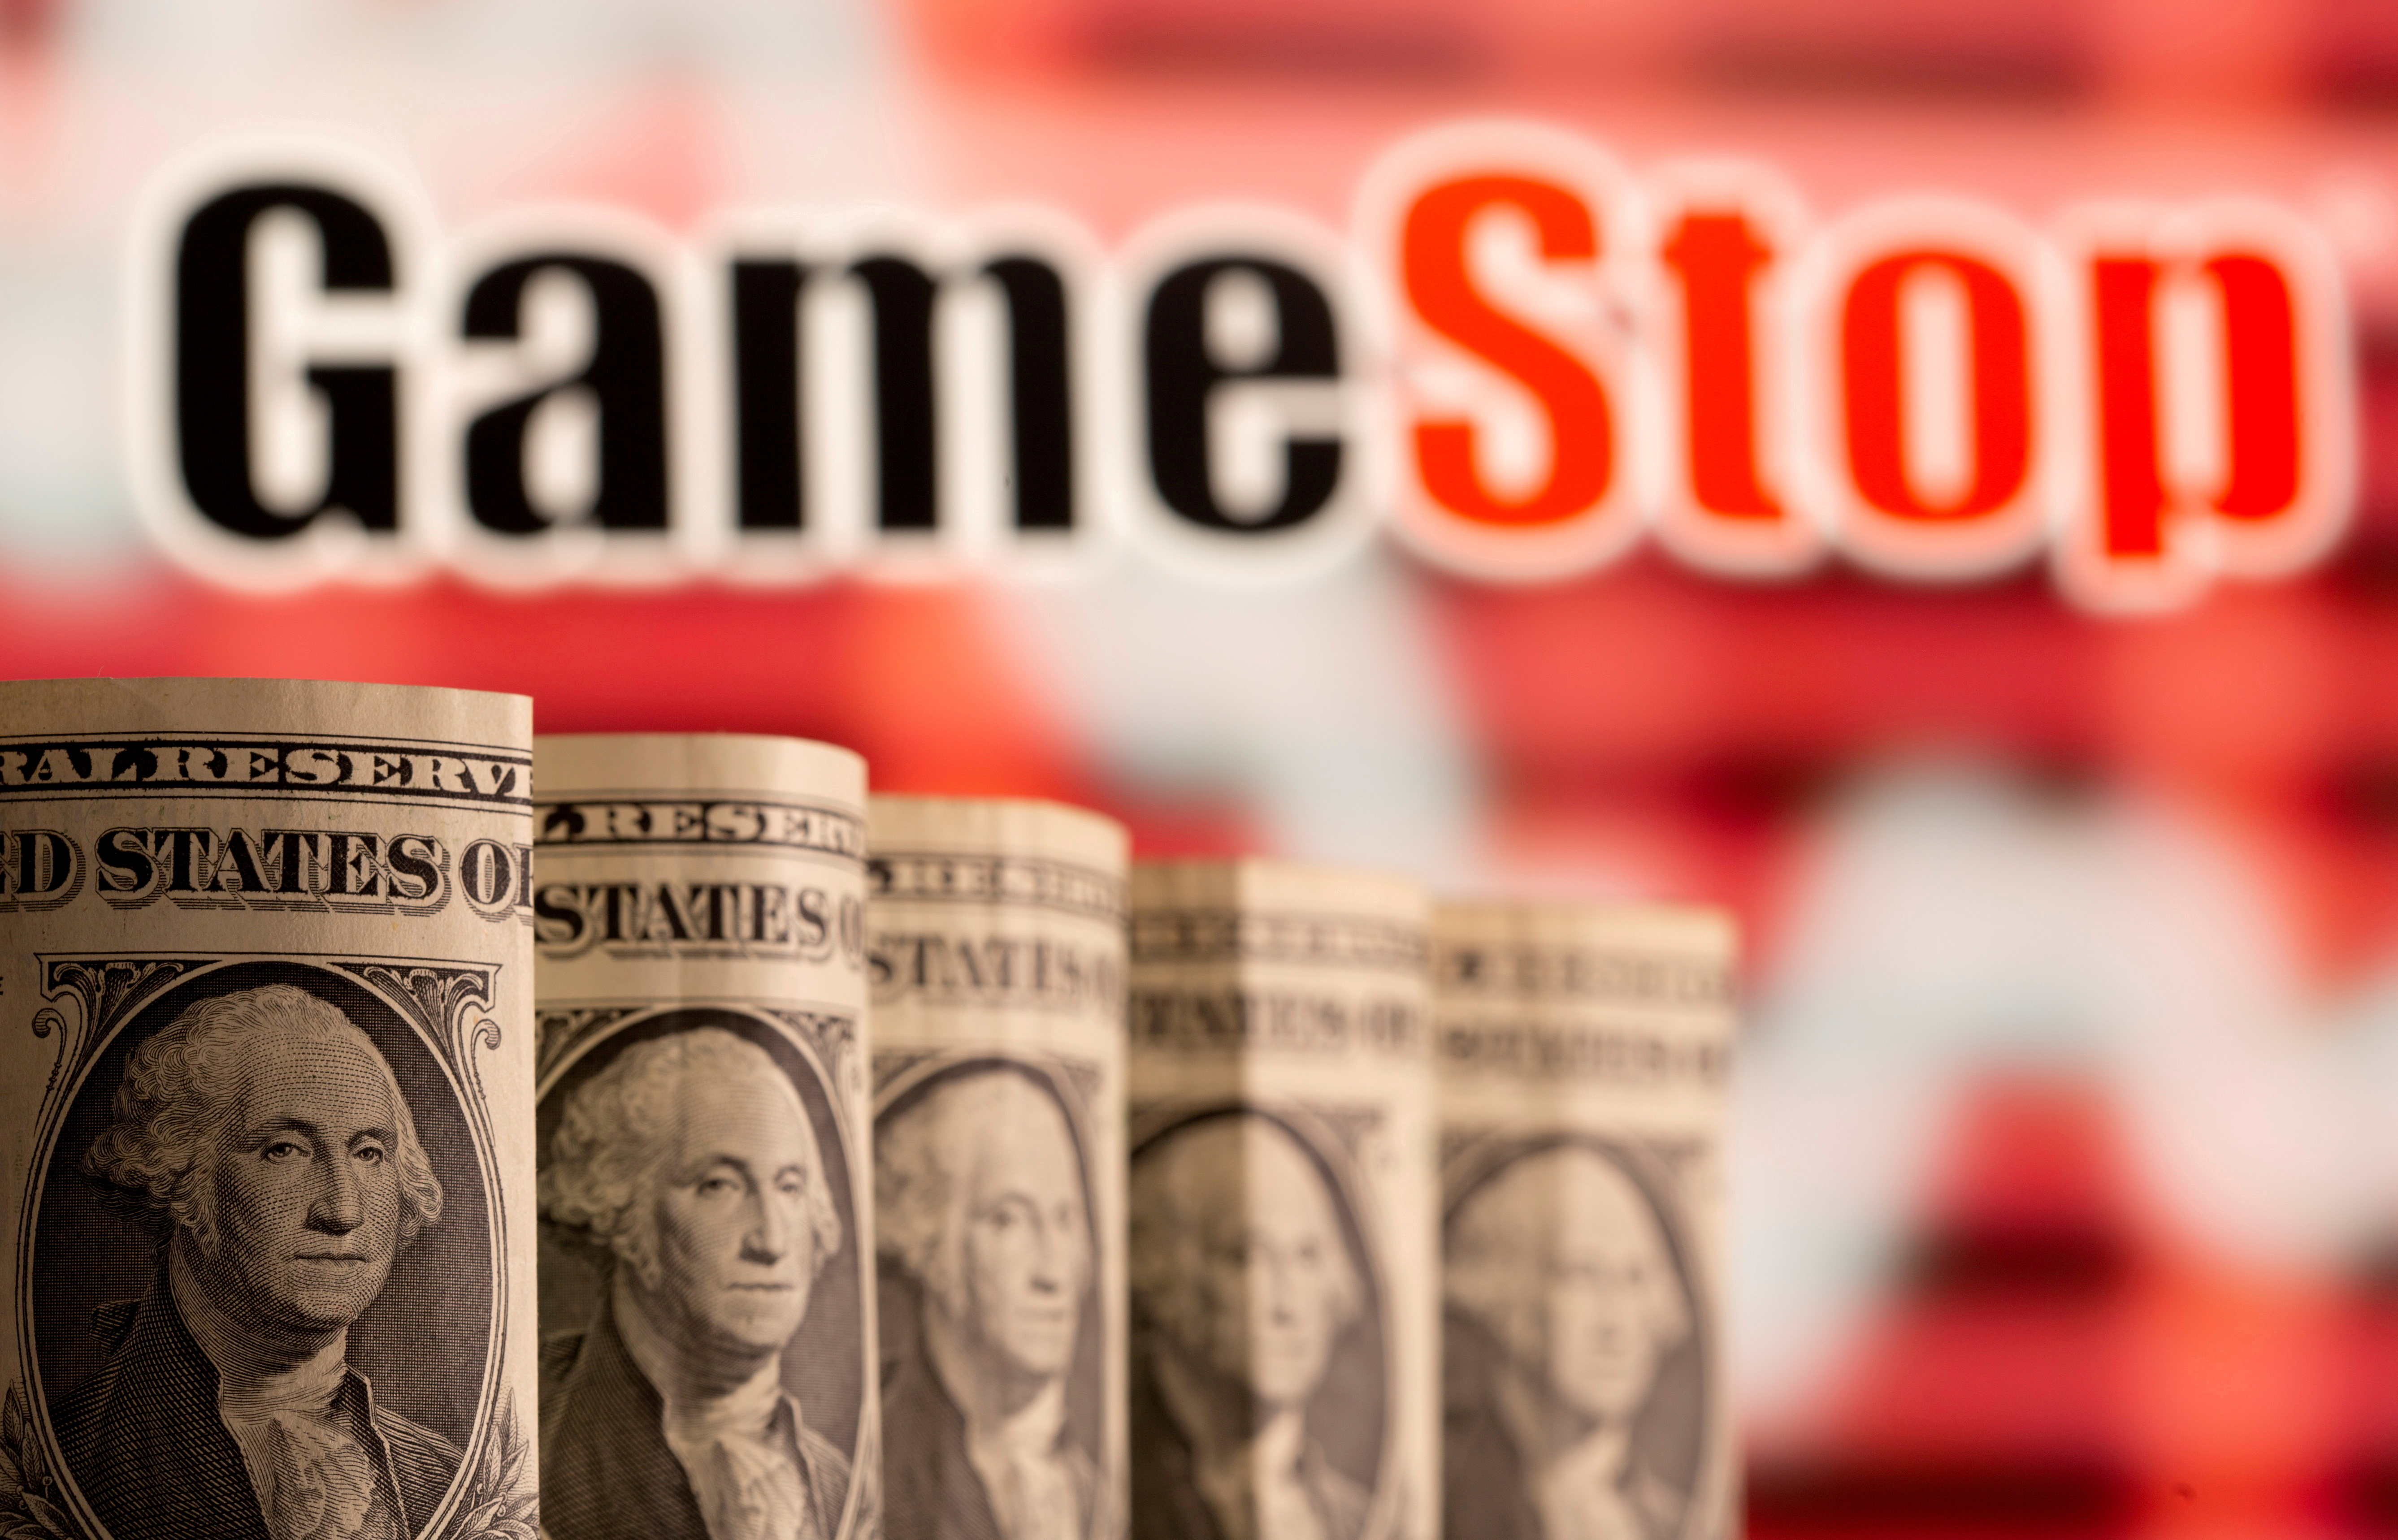 U.S. one dollar banknotes are seen in front of displayed GameStop logo in this illustration taken February 8, 2021. REUTERS/Dado Ruvic/Illustration/File Photo